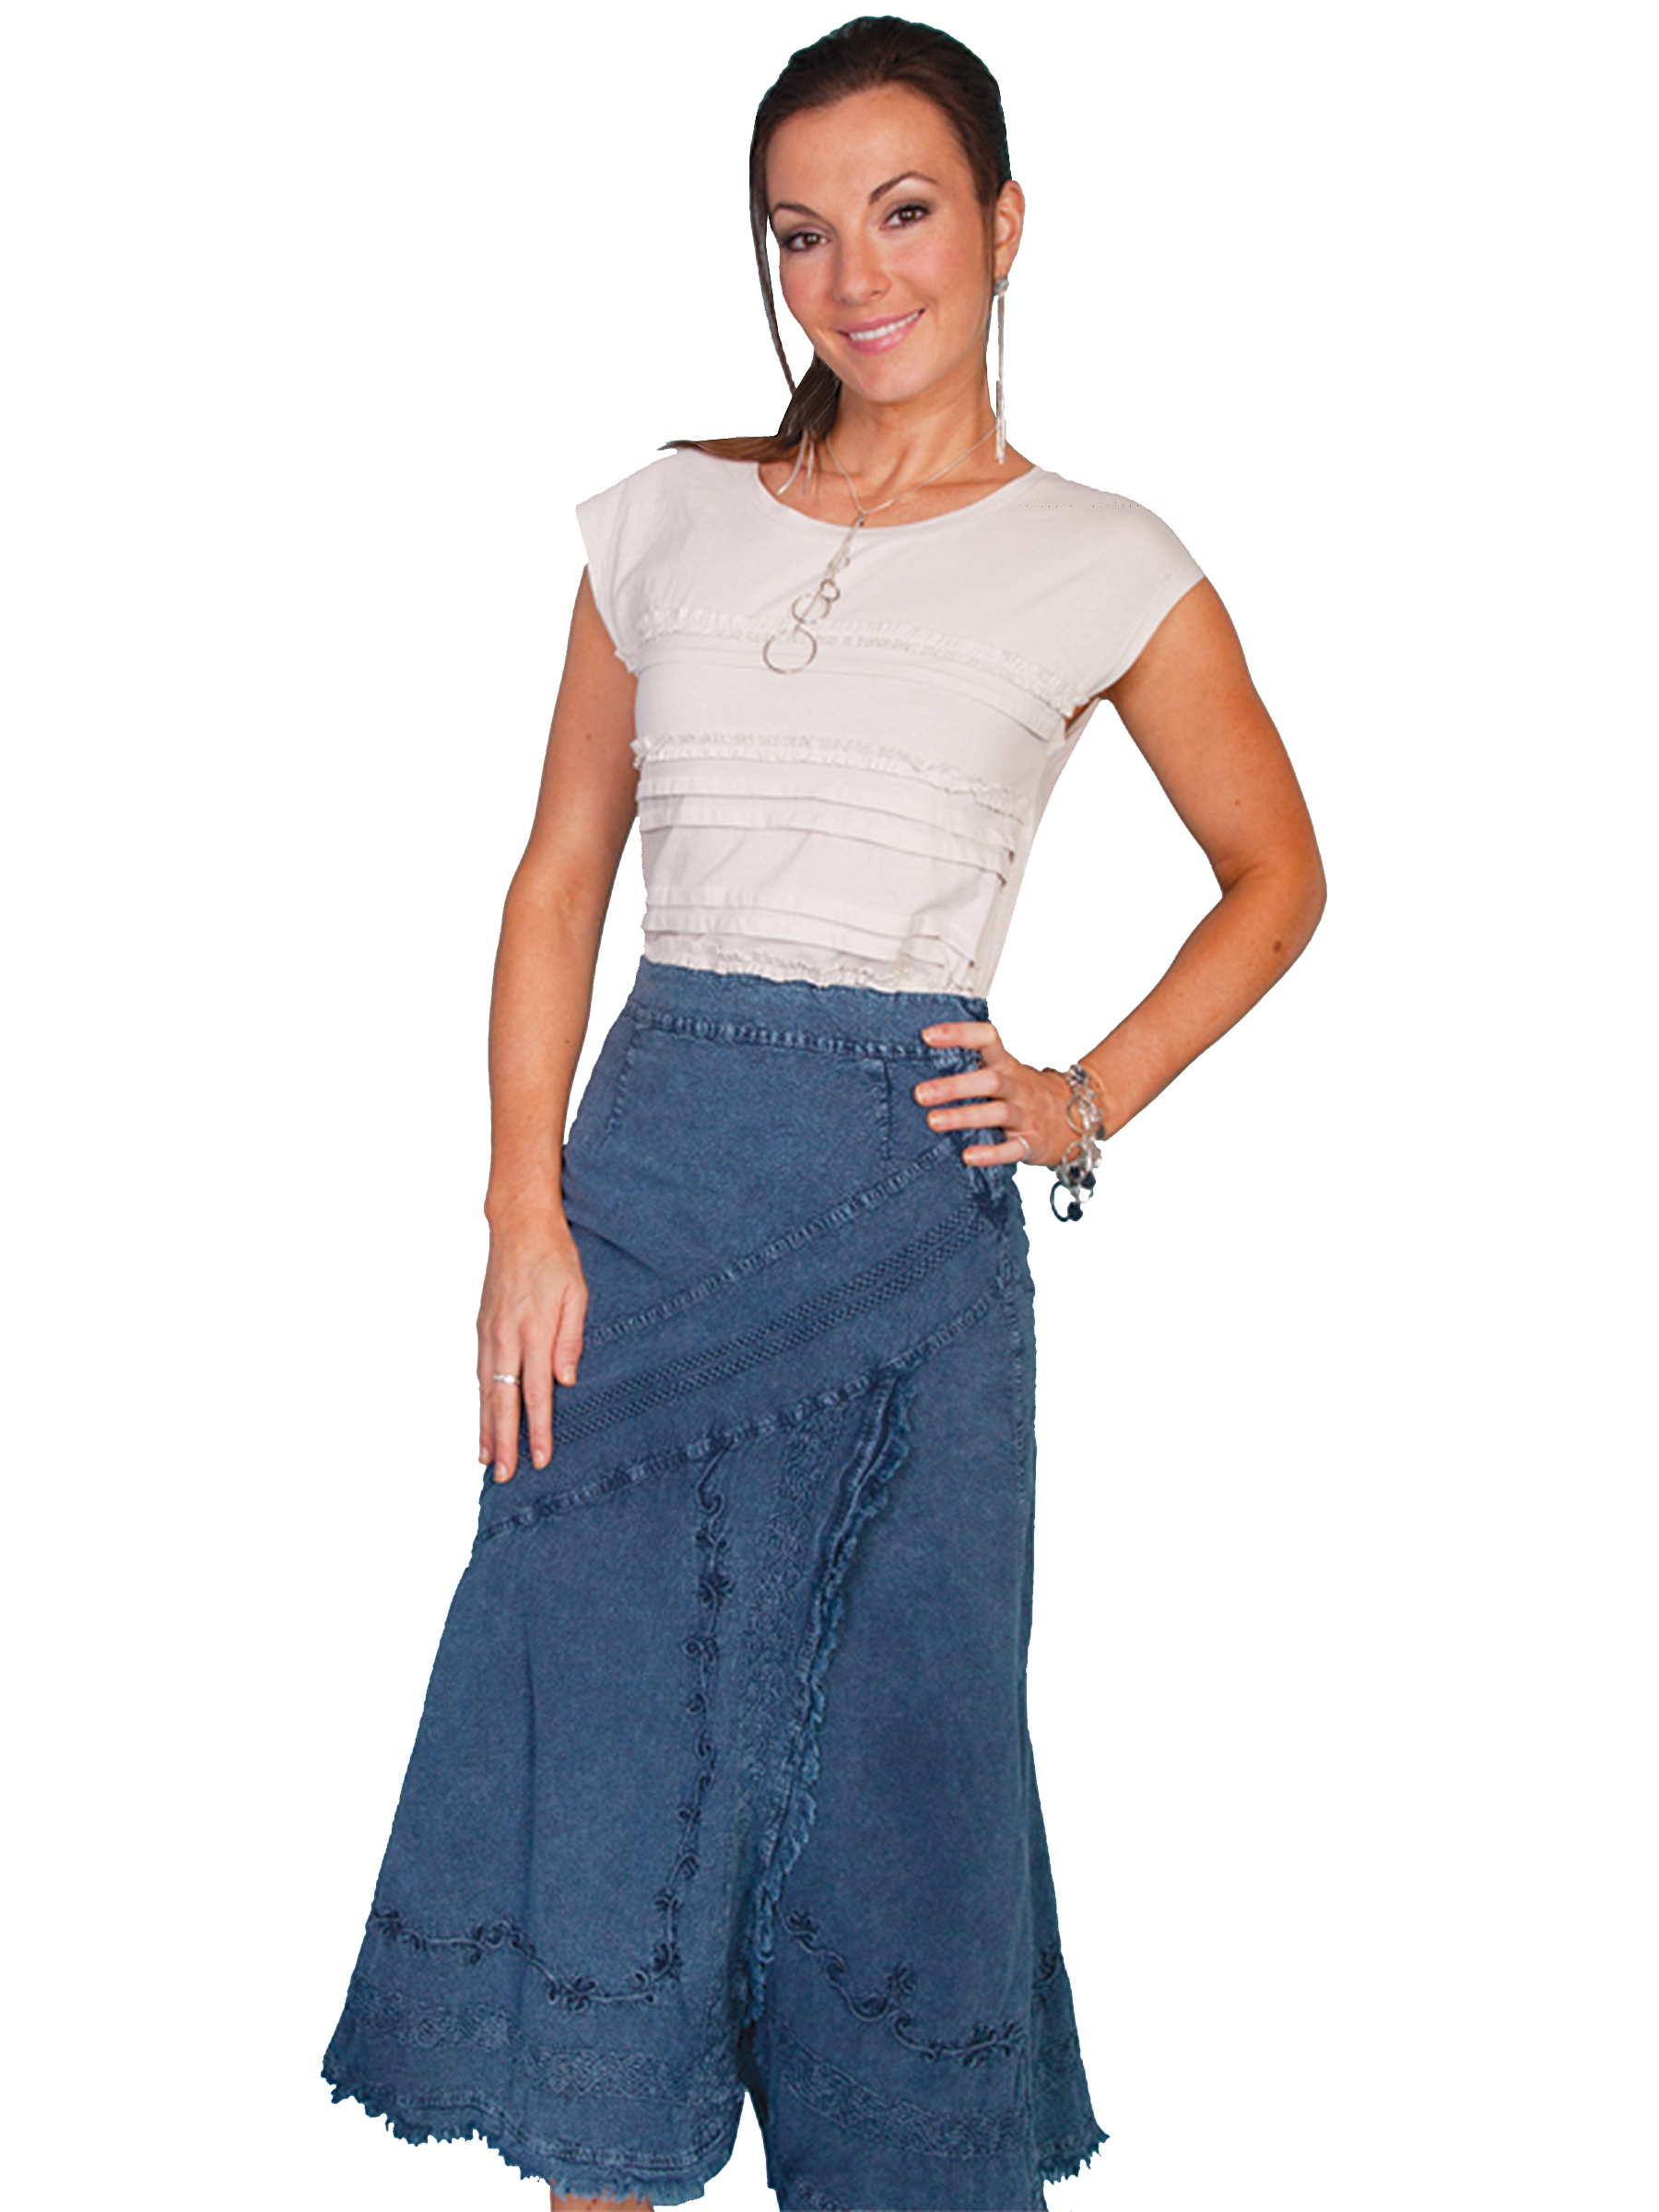 100% peruvian cotton skirt with elastic back